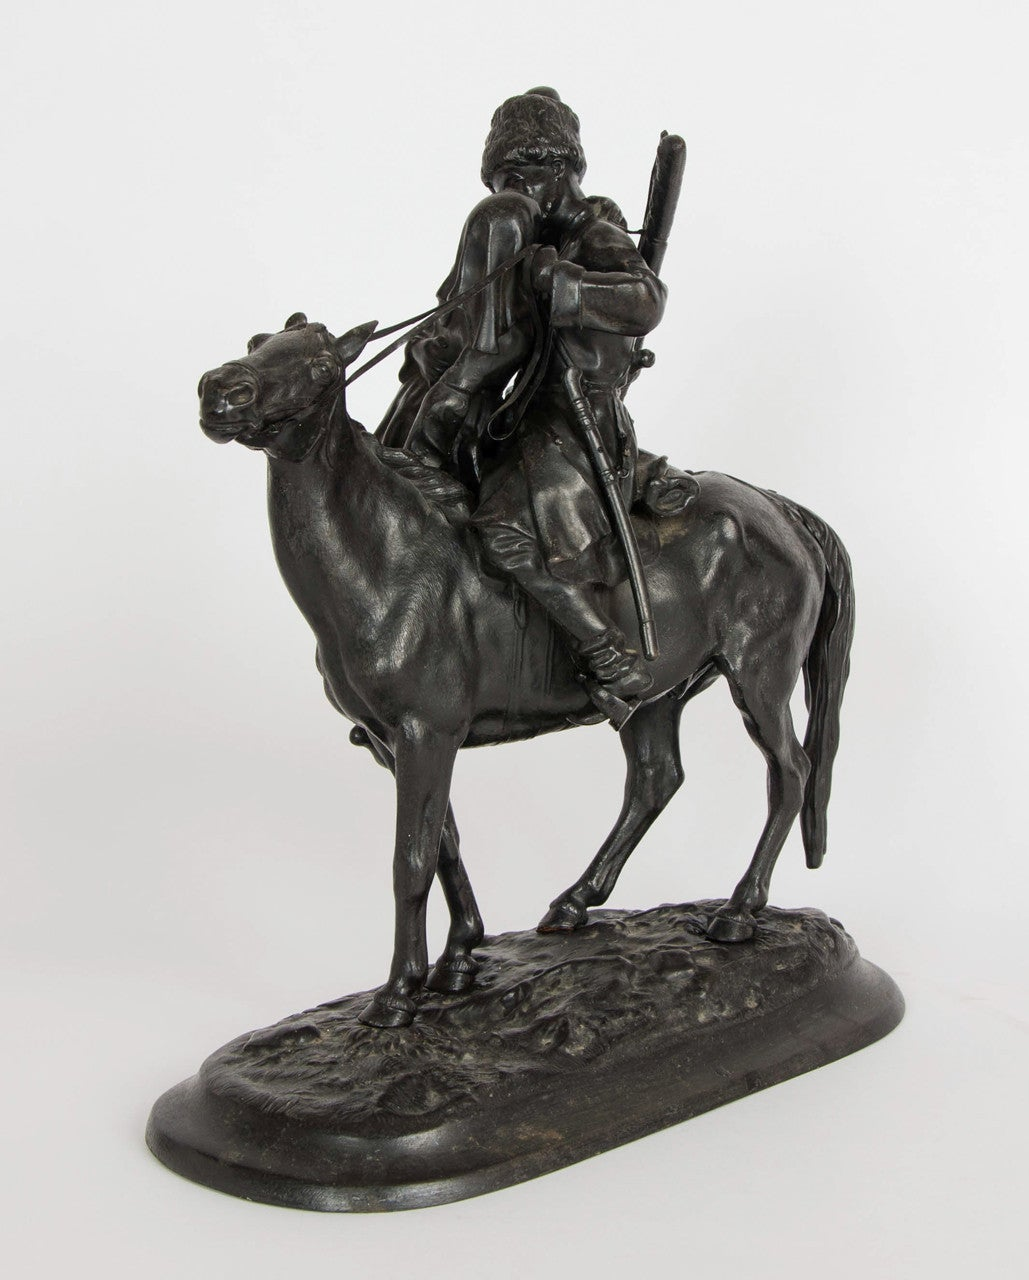 The cossack interlaced in a woman's arms on the verge of kissing whilst on the horse.